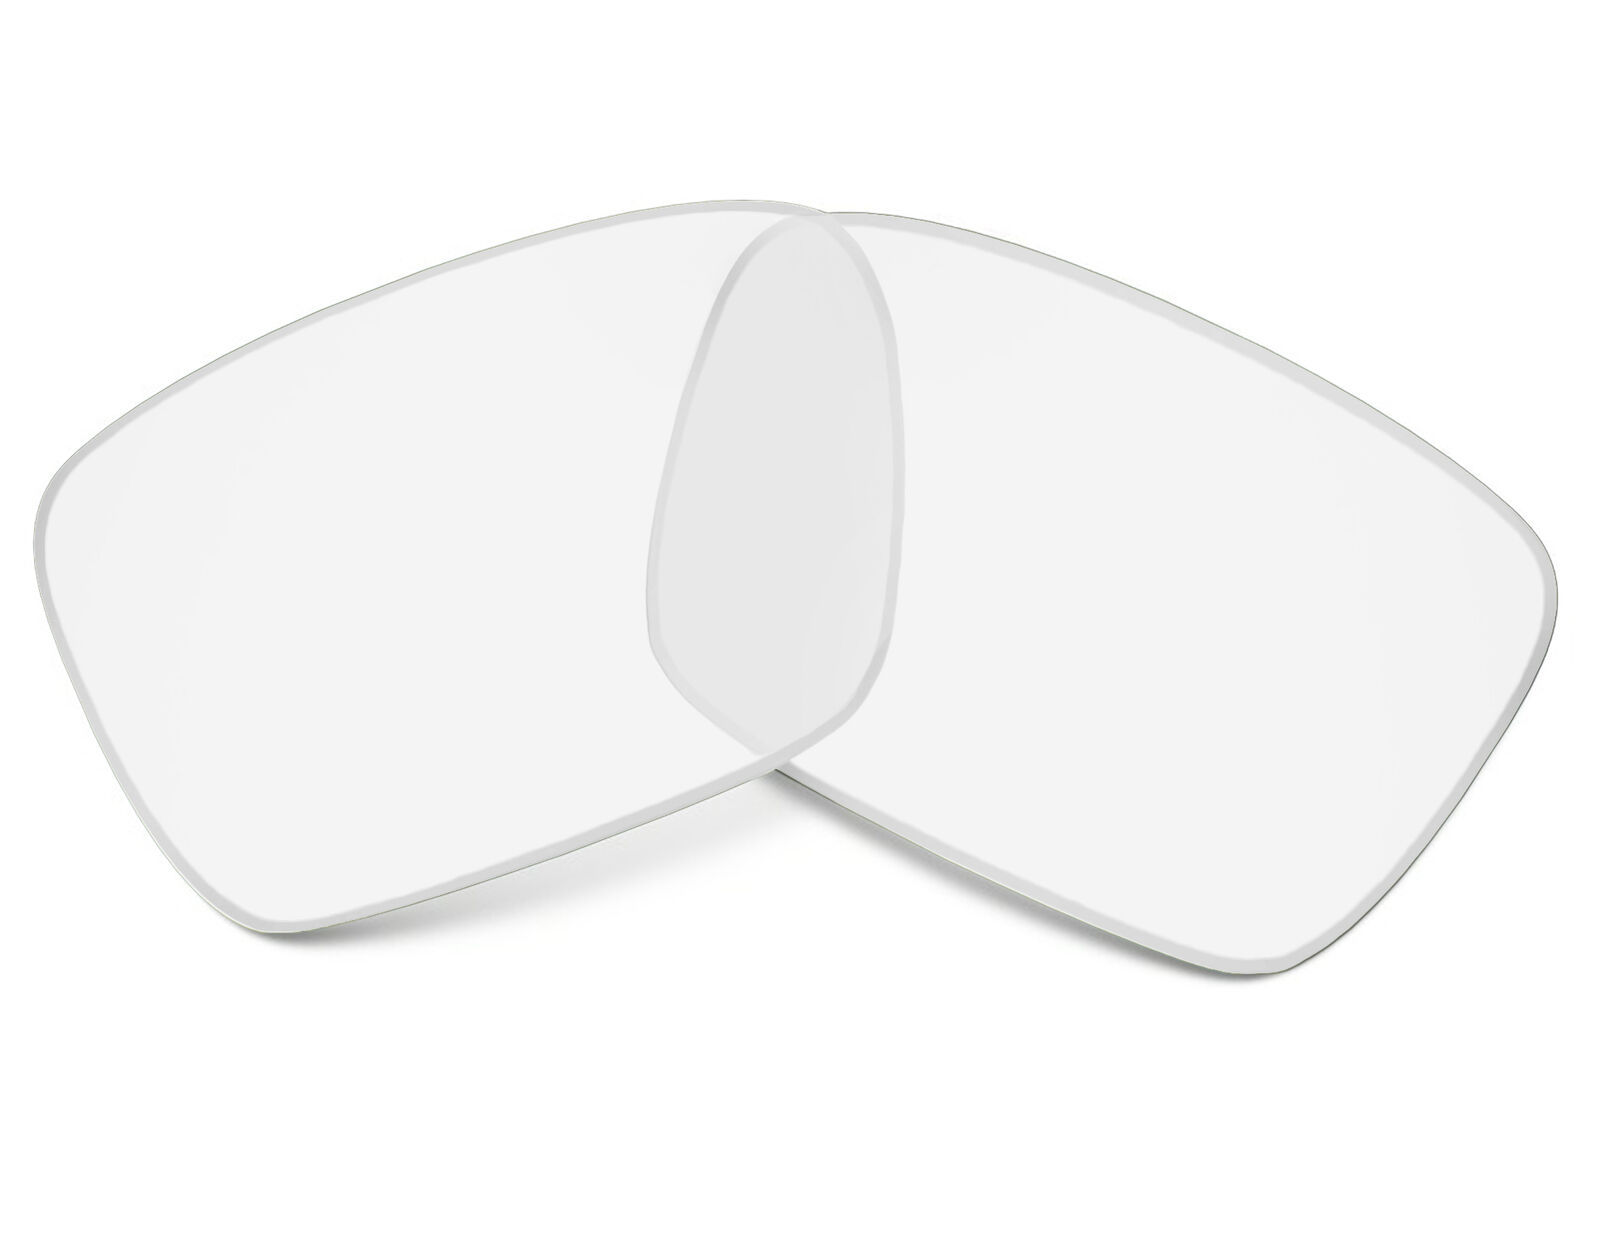 Primary image for Replacement Lenses for Oakley Fuel Cell Sunglasses Anti-Scratch Crystal Clear